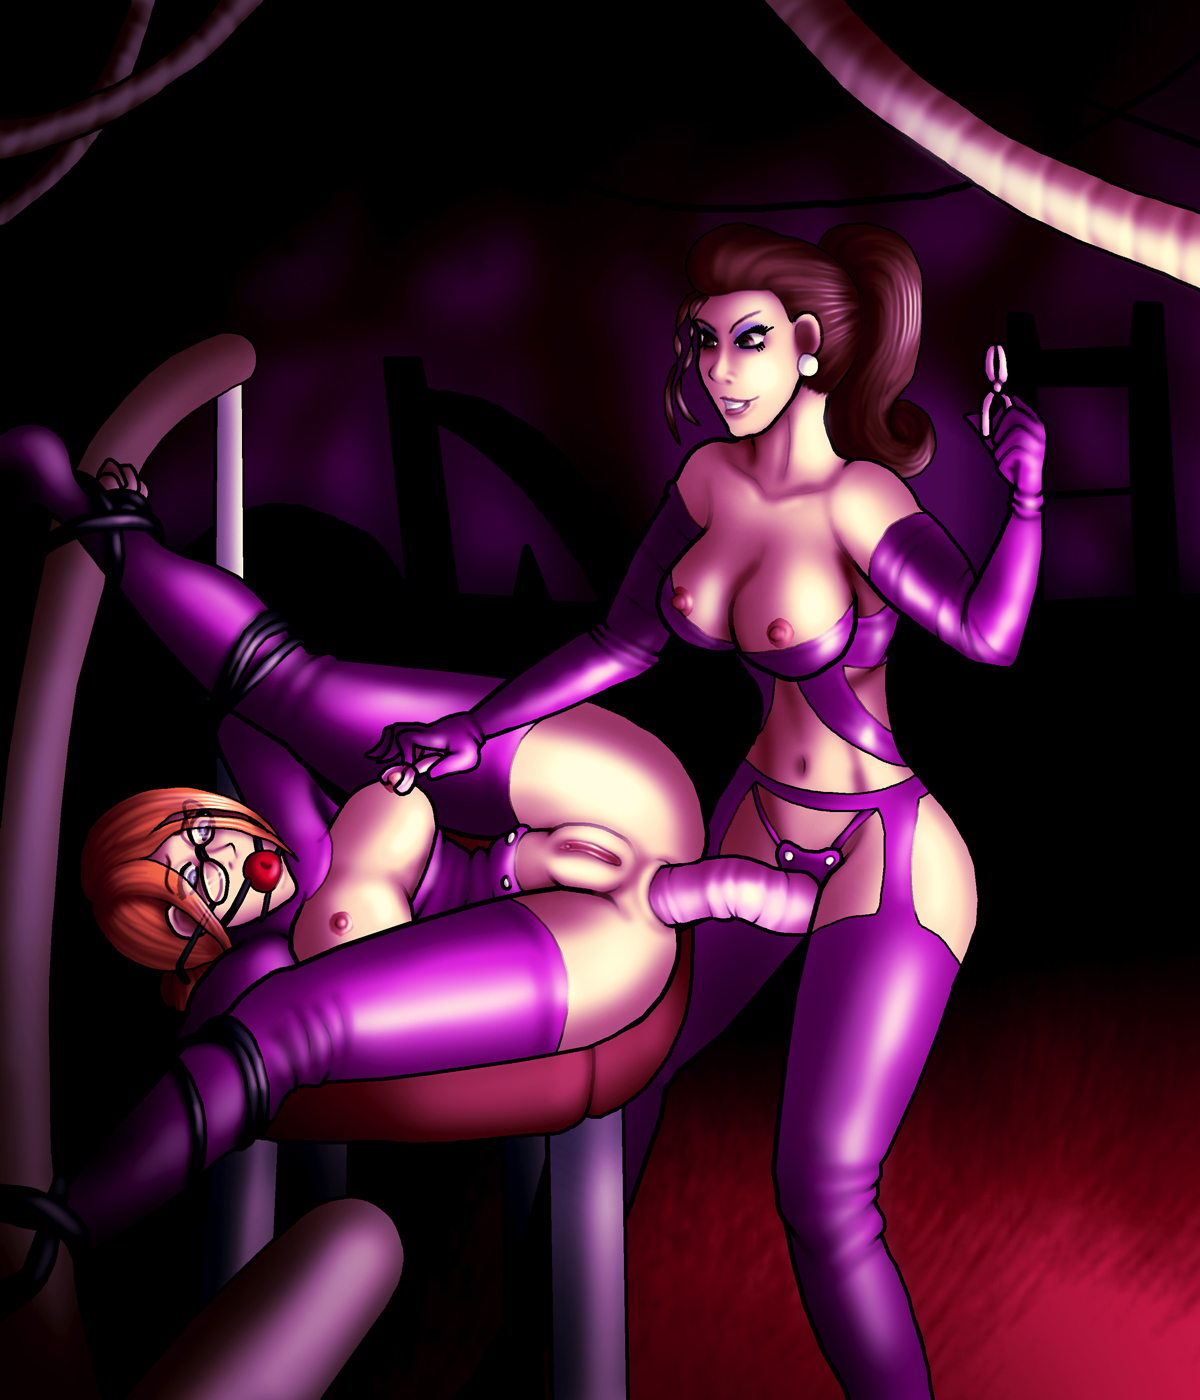 Saints row 4 kinzie hentai porn video